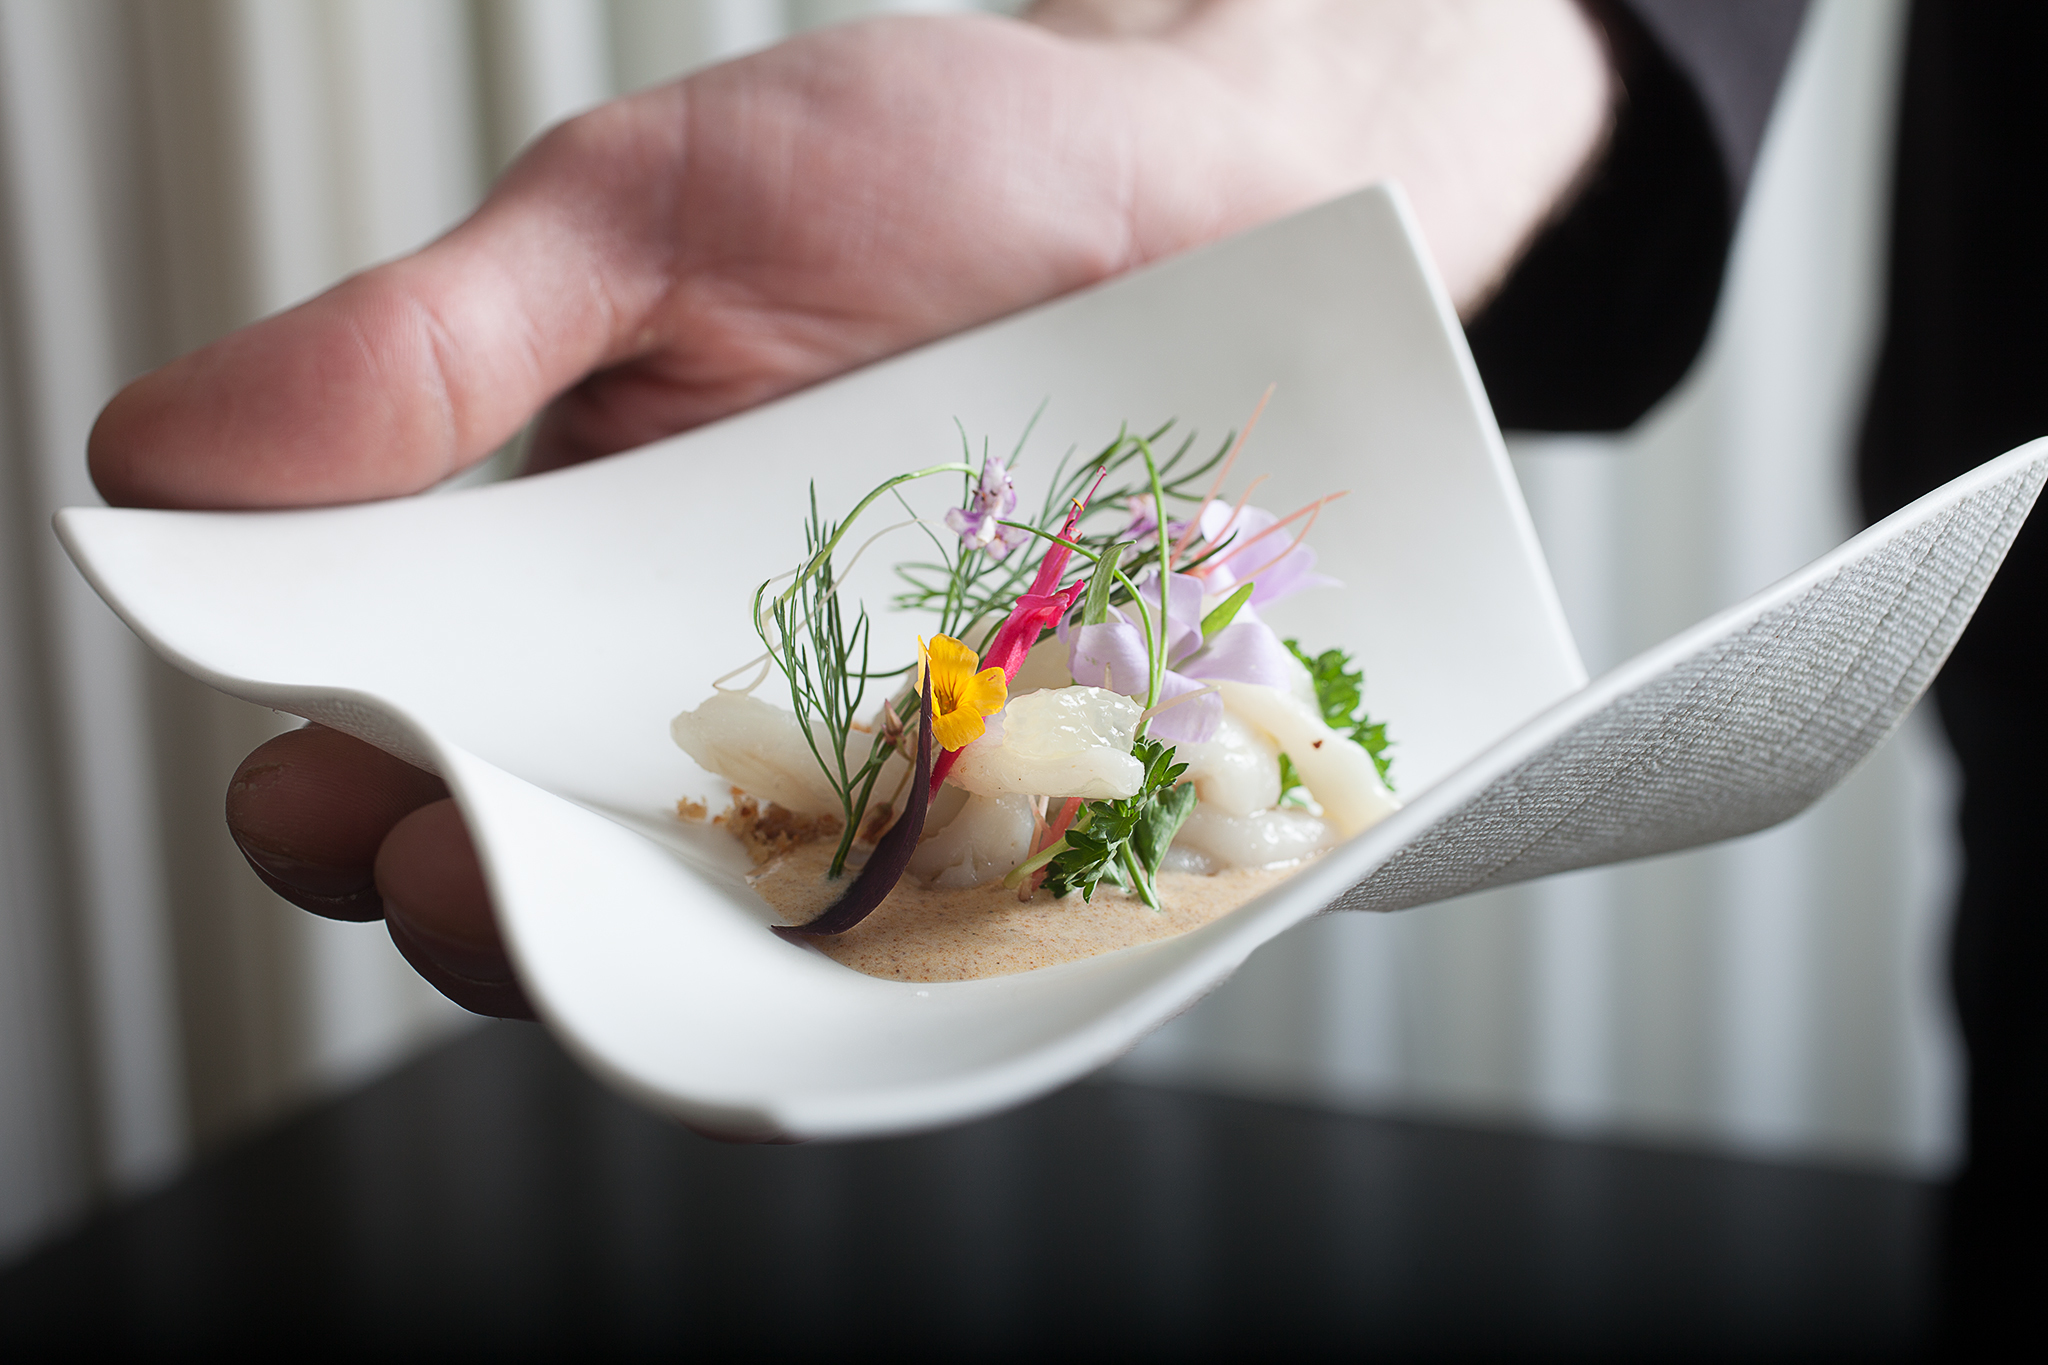 Alinea & 42 Grams snag yet-more awards